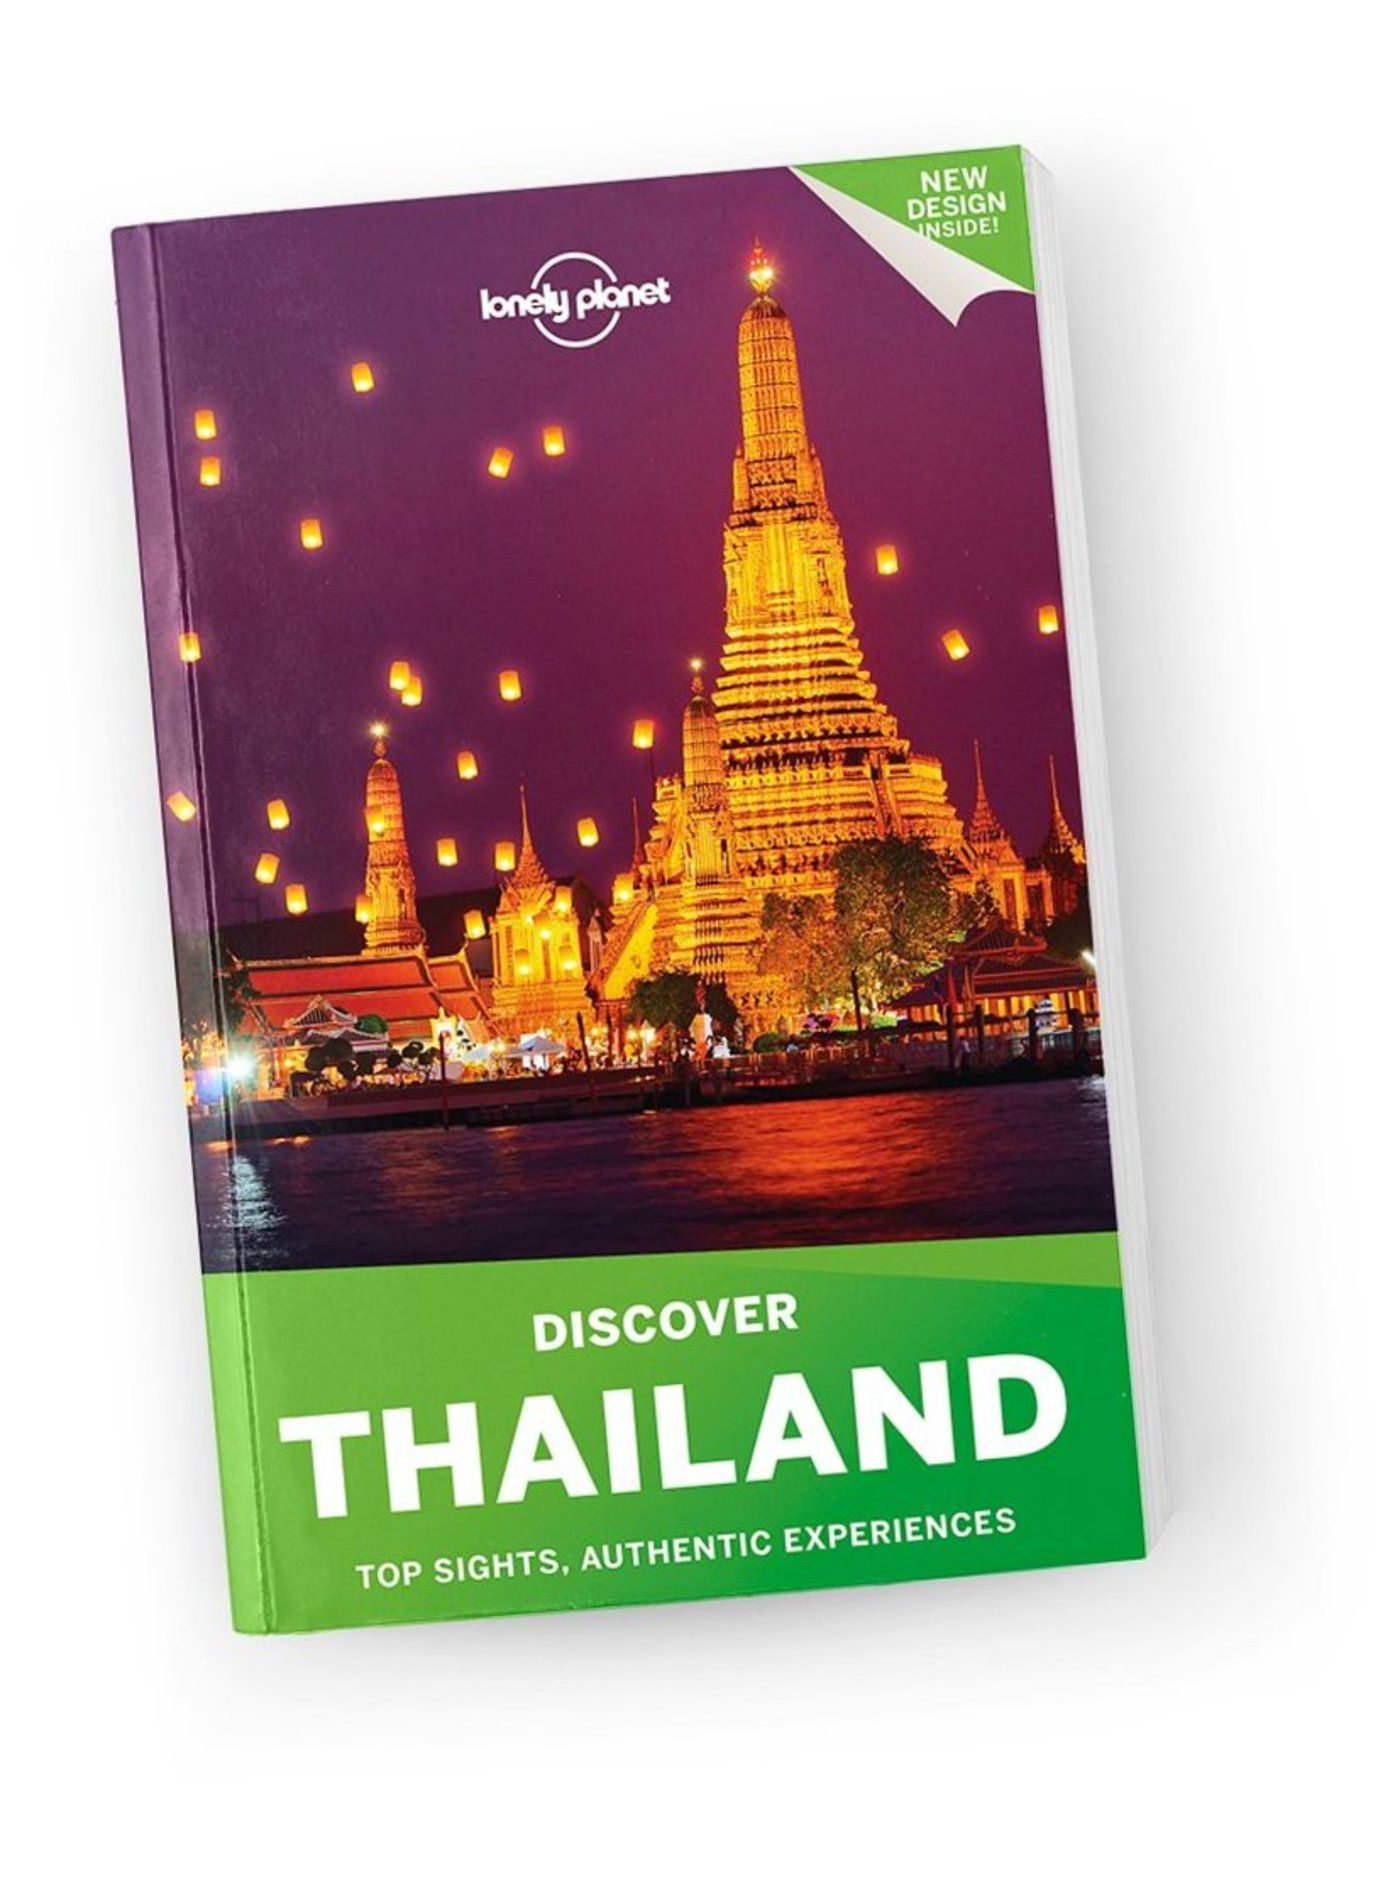 Discover Thailand travel guide - 4th edition